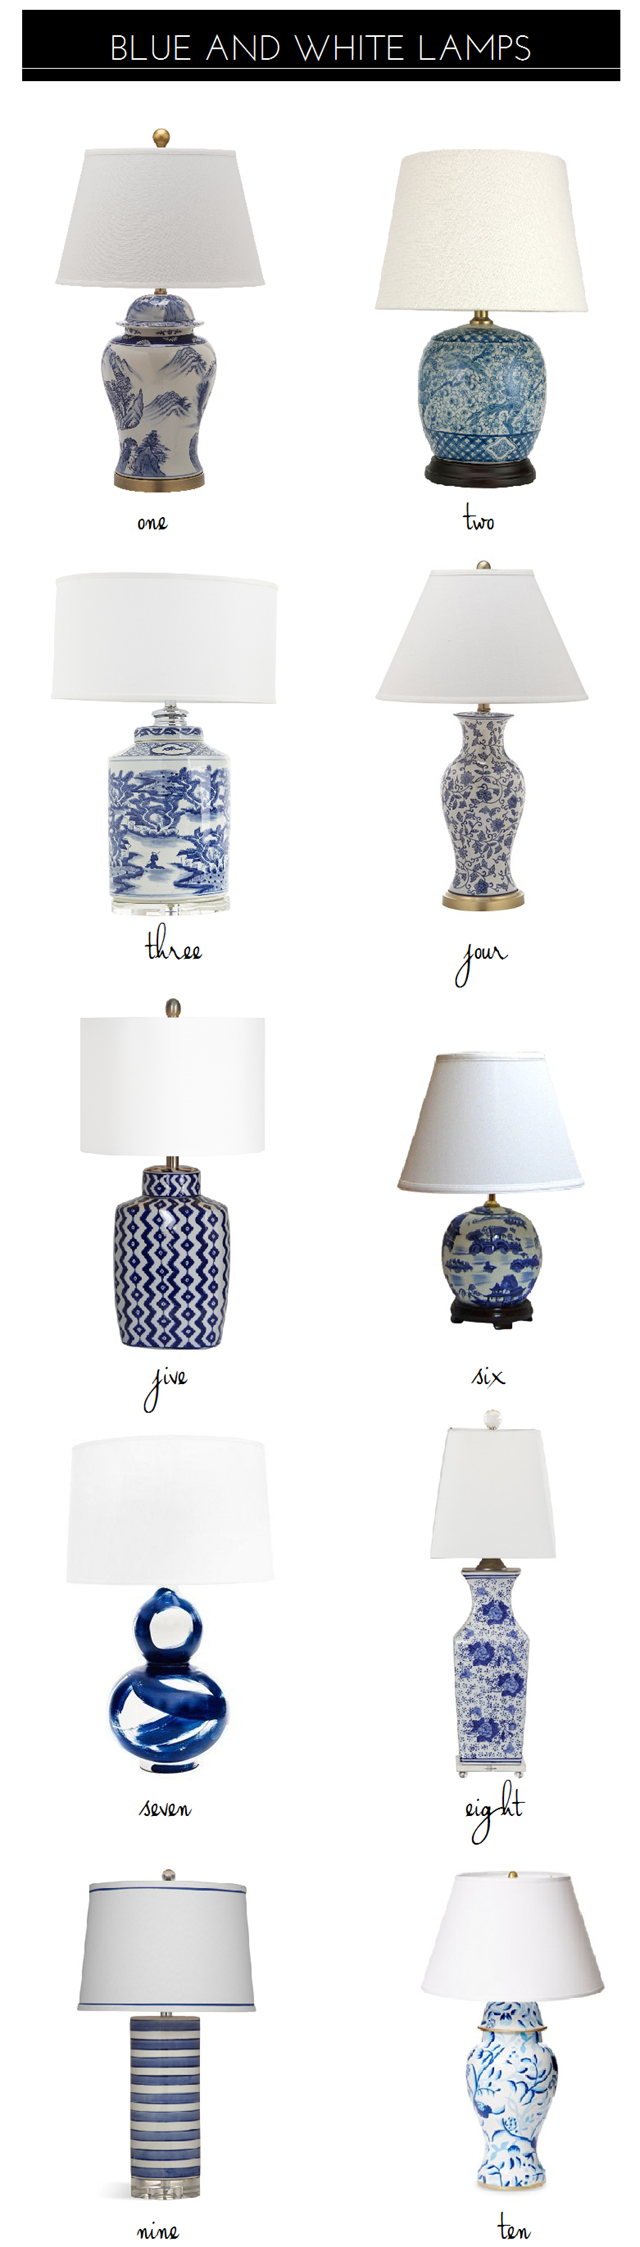 Shop the Classics: Blue and White Lamps